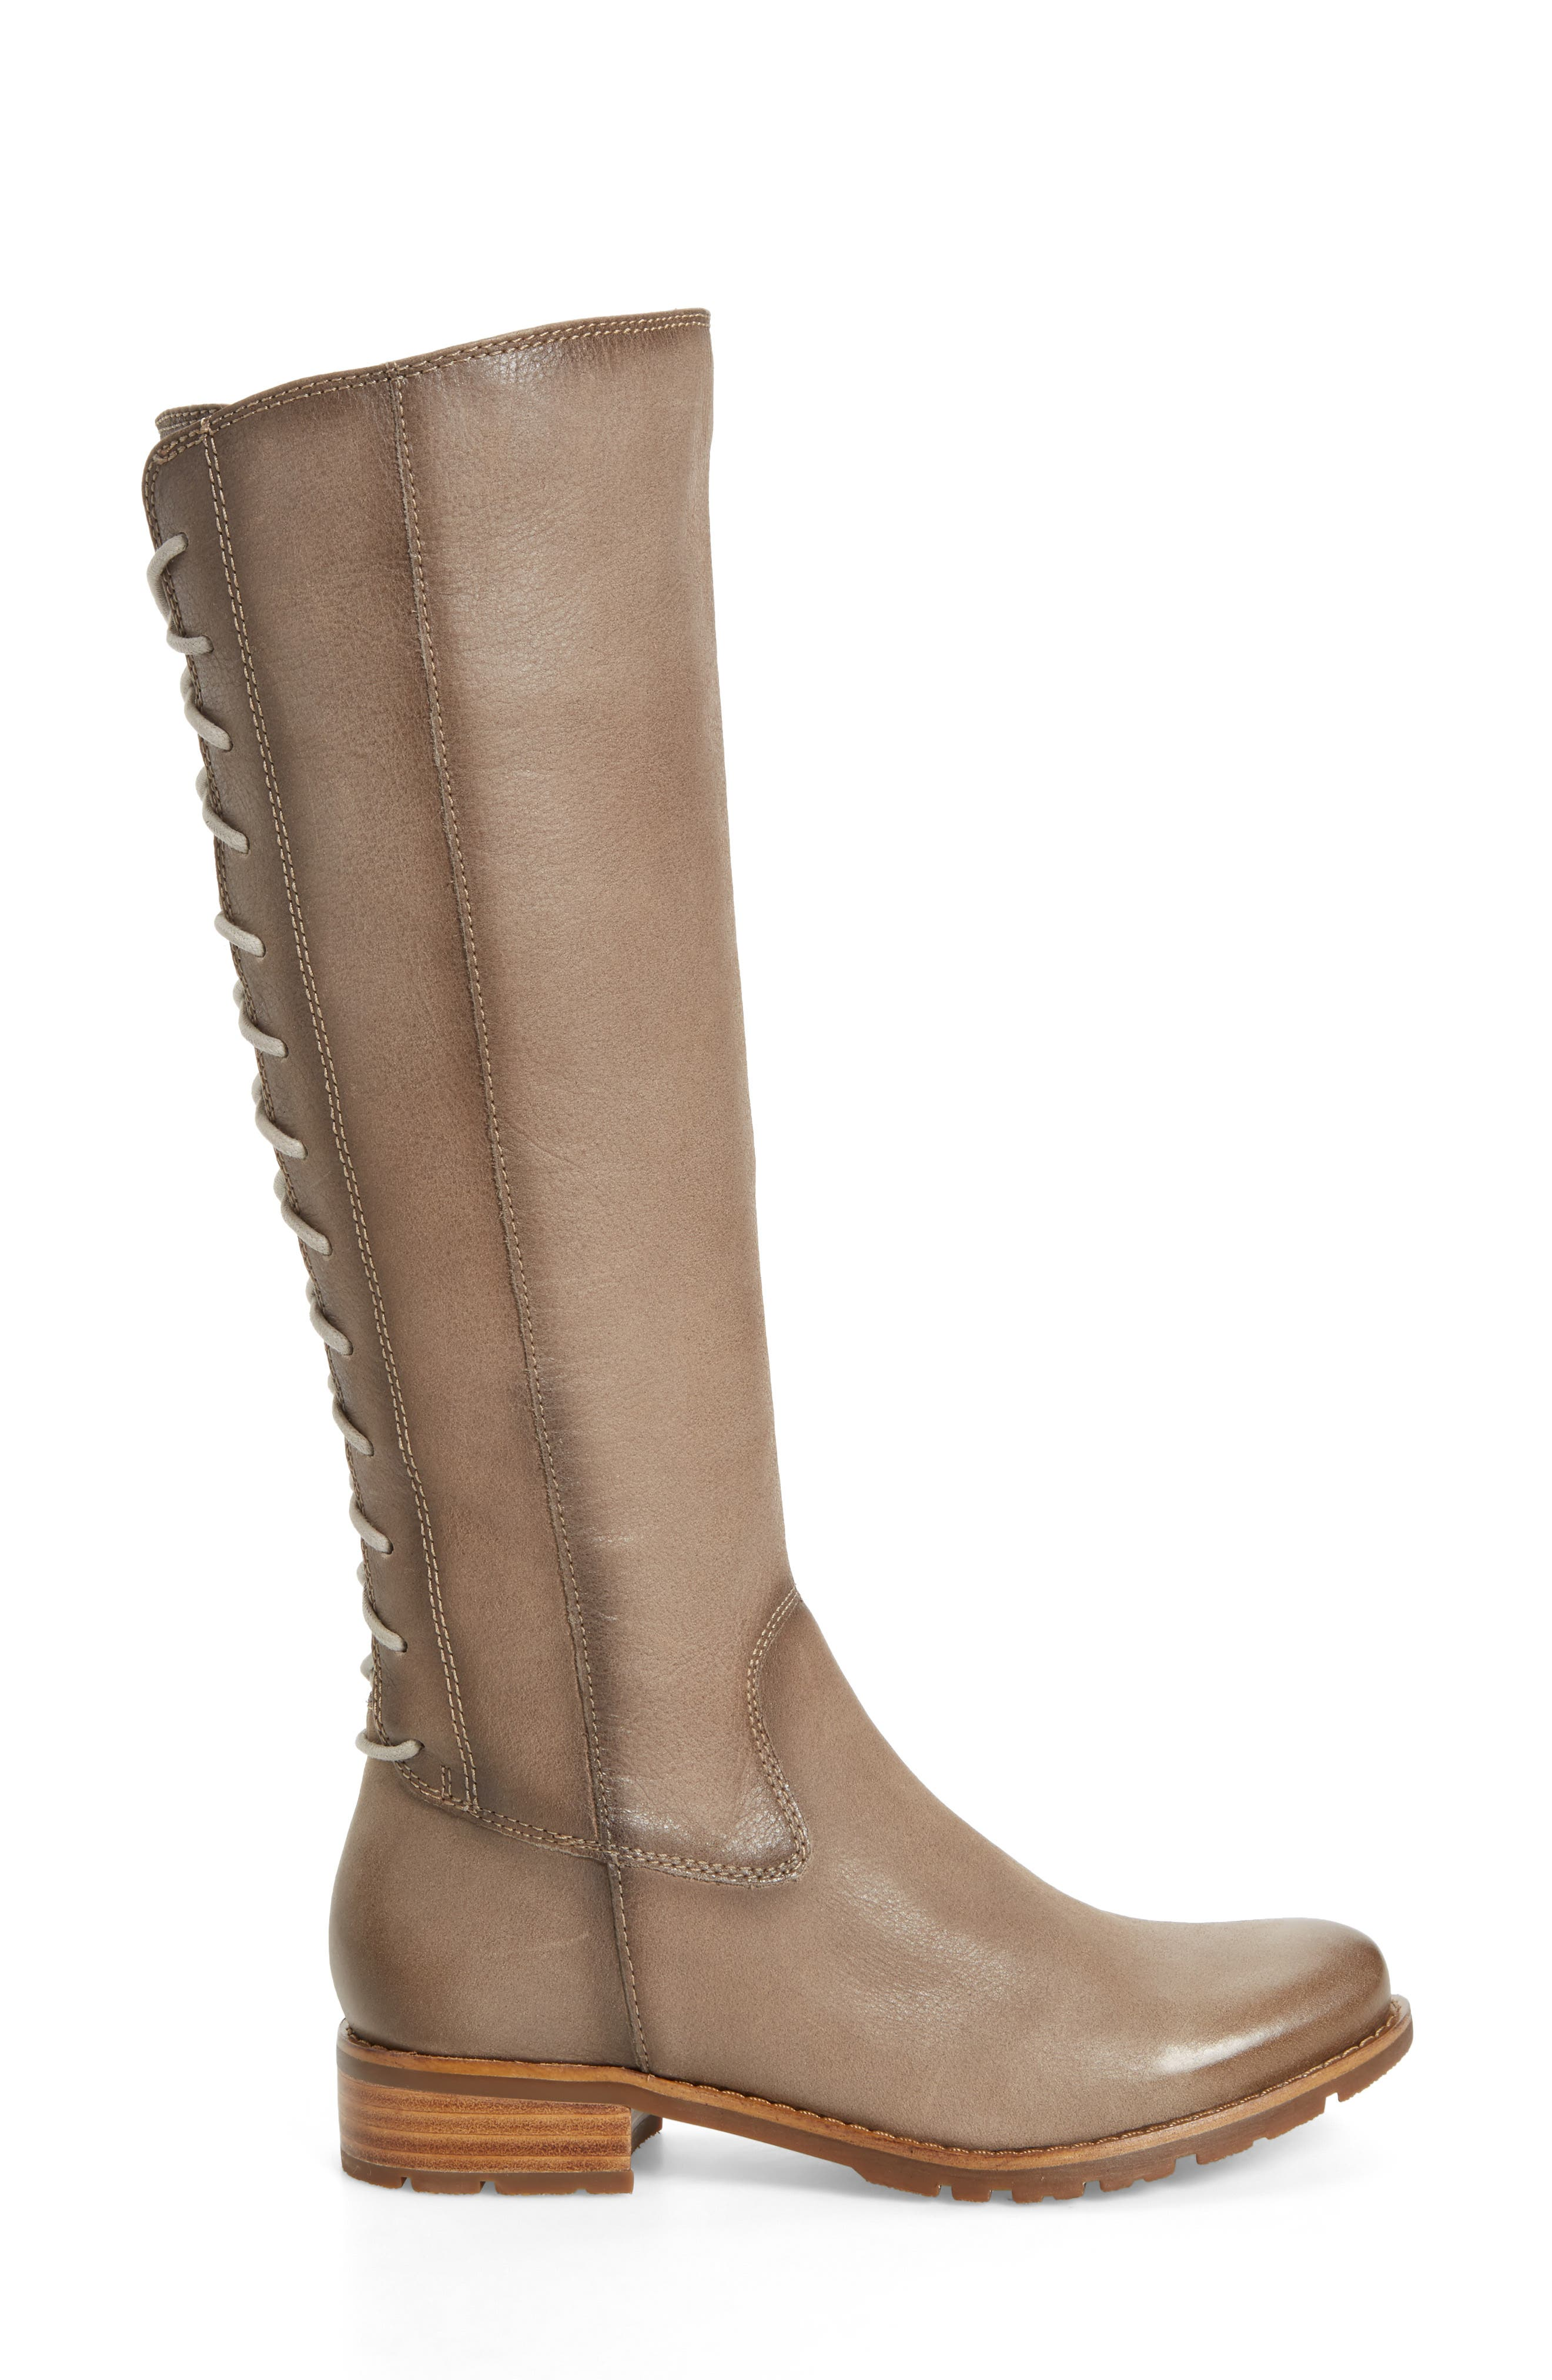 'Sharnell' Riding Boot,                             Alternate thumbnail 3, color,                             030